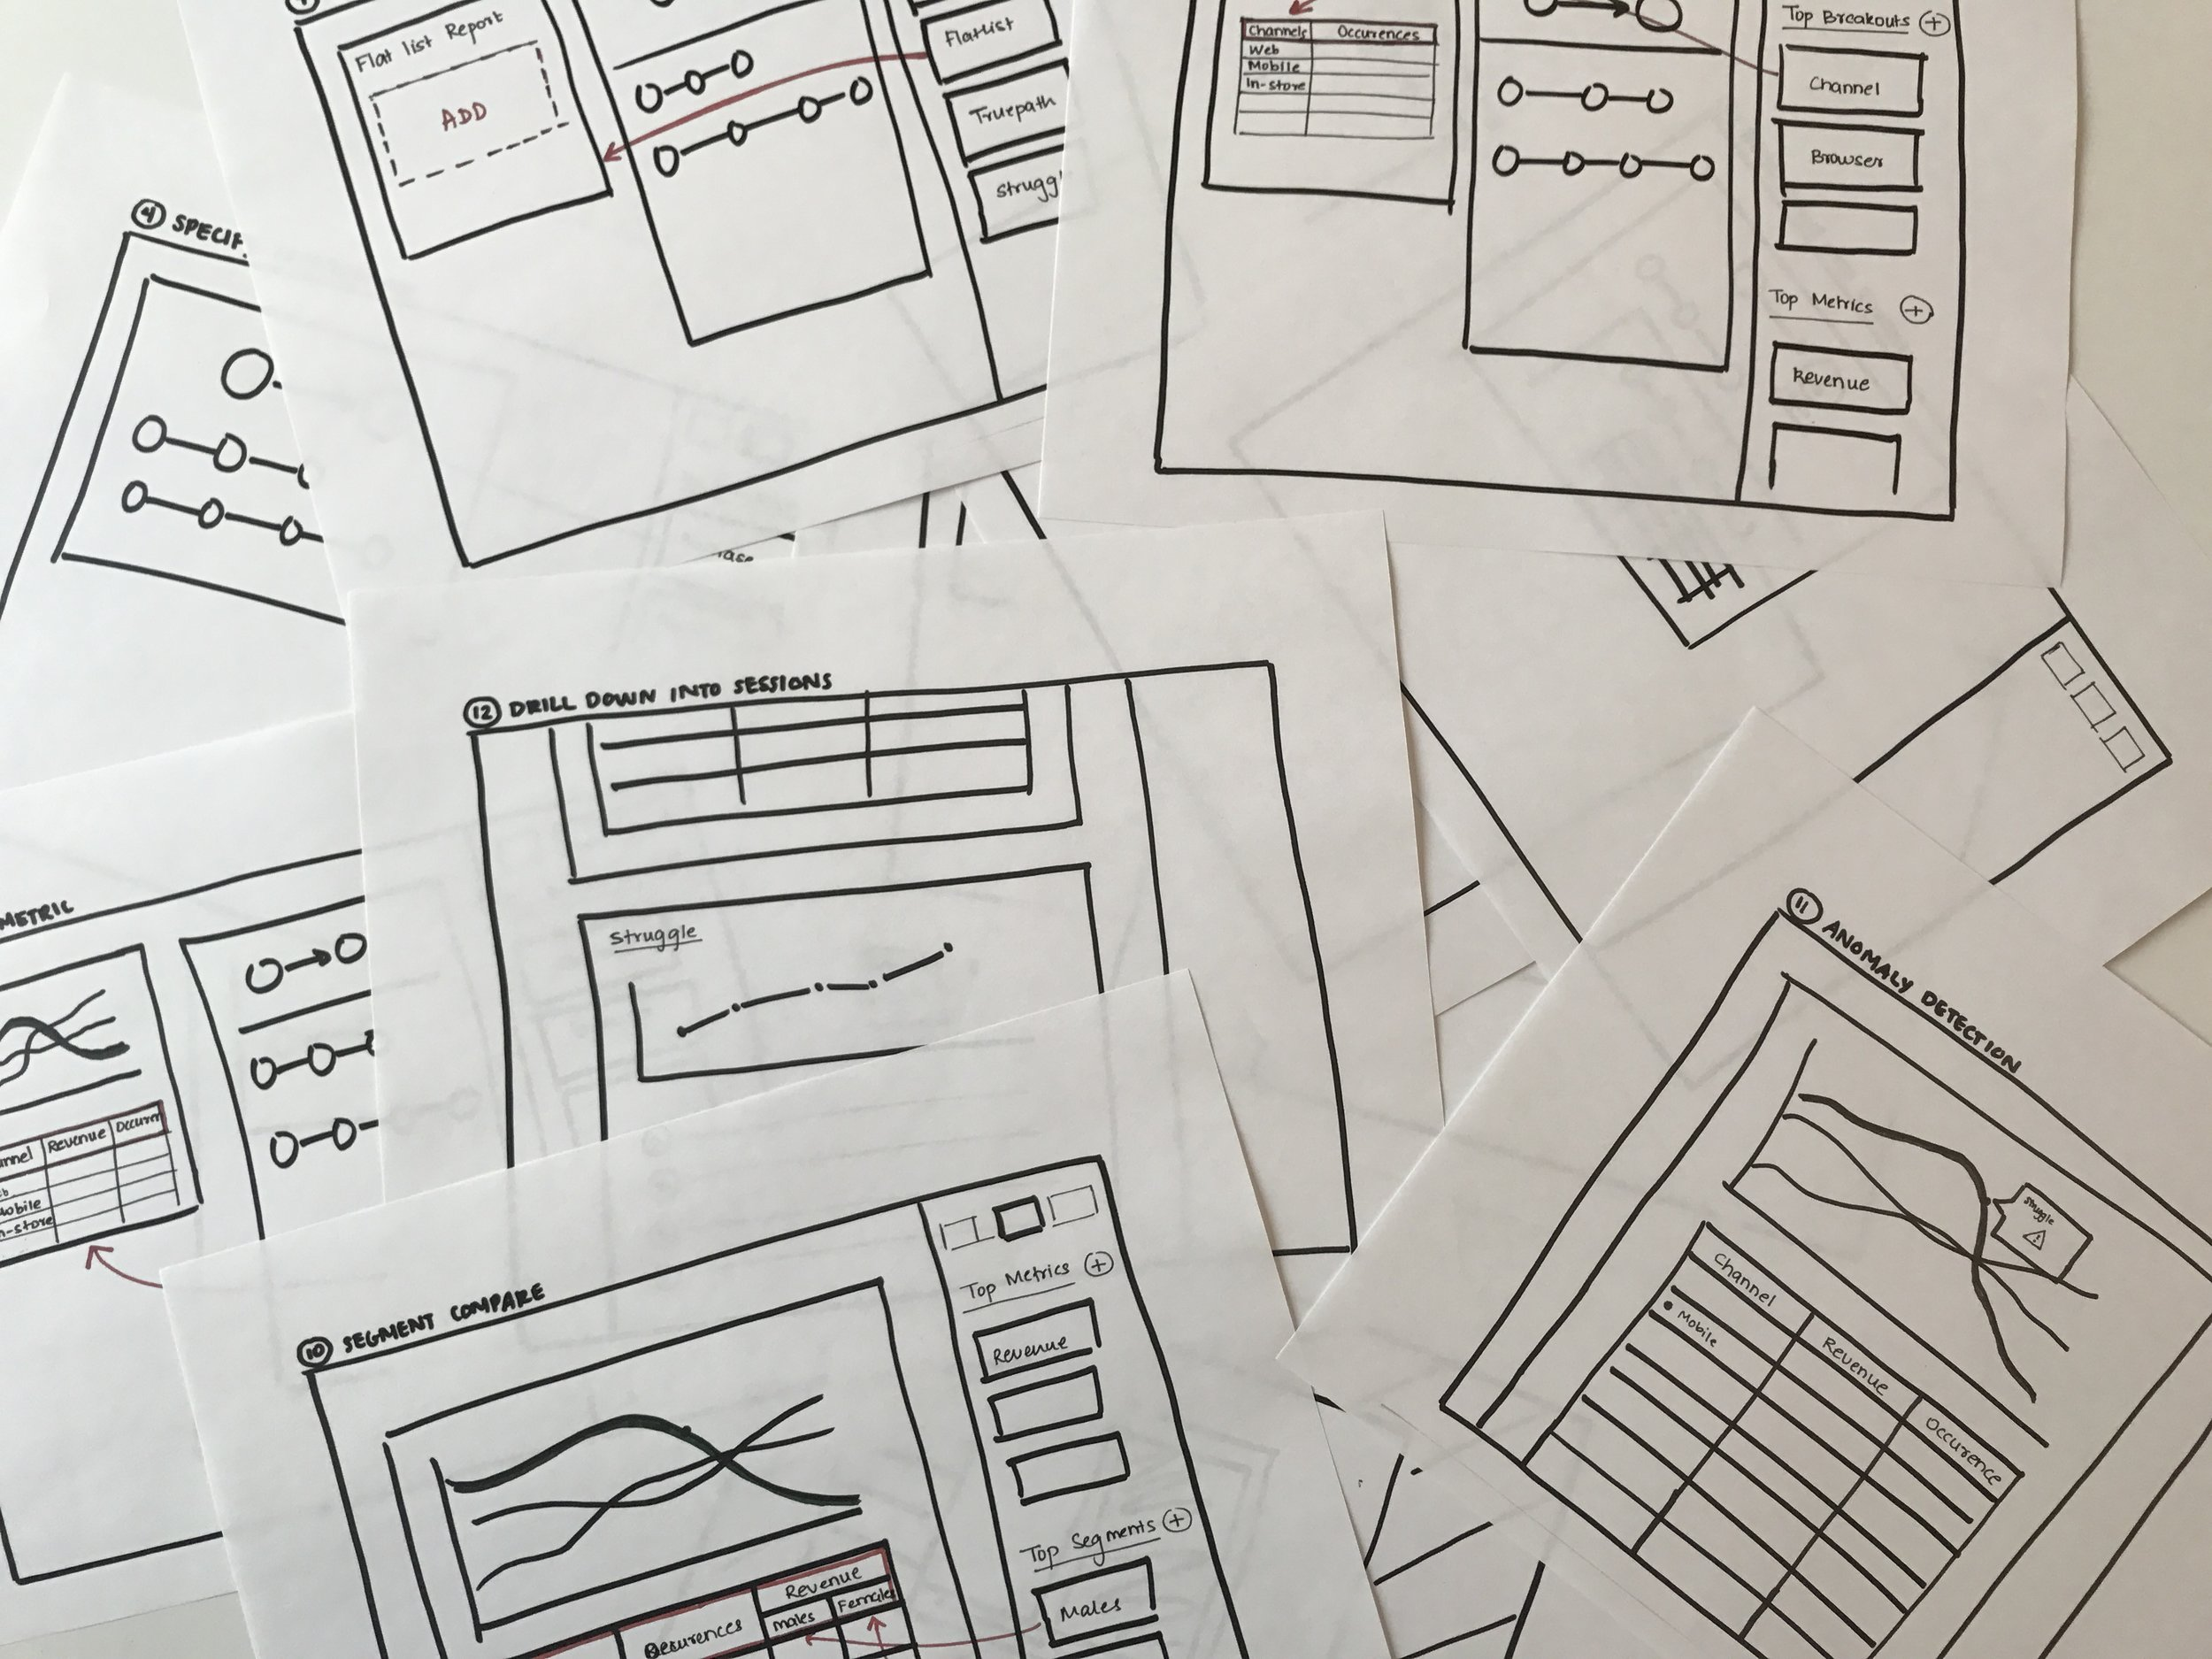 wireframes.jpeg